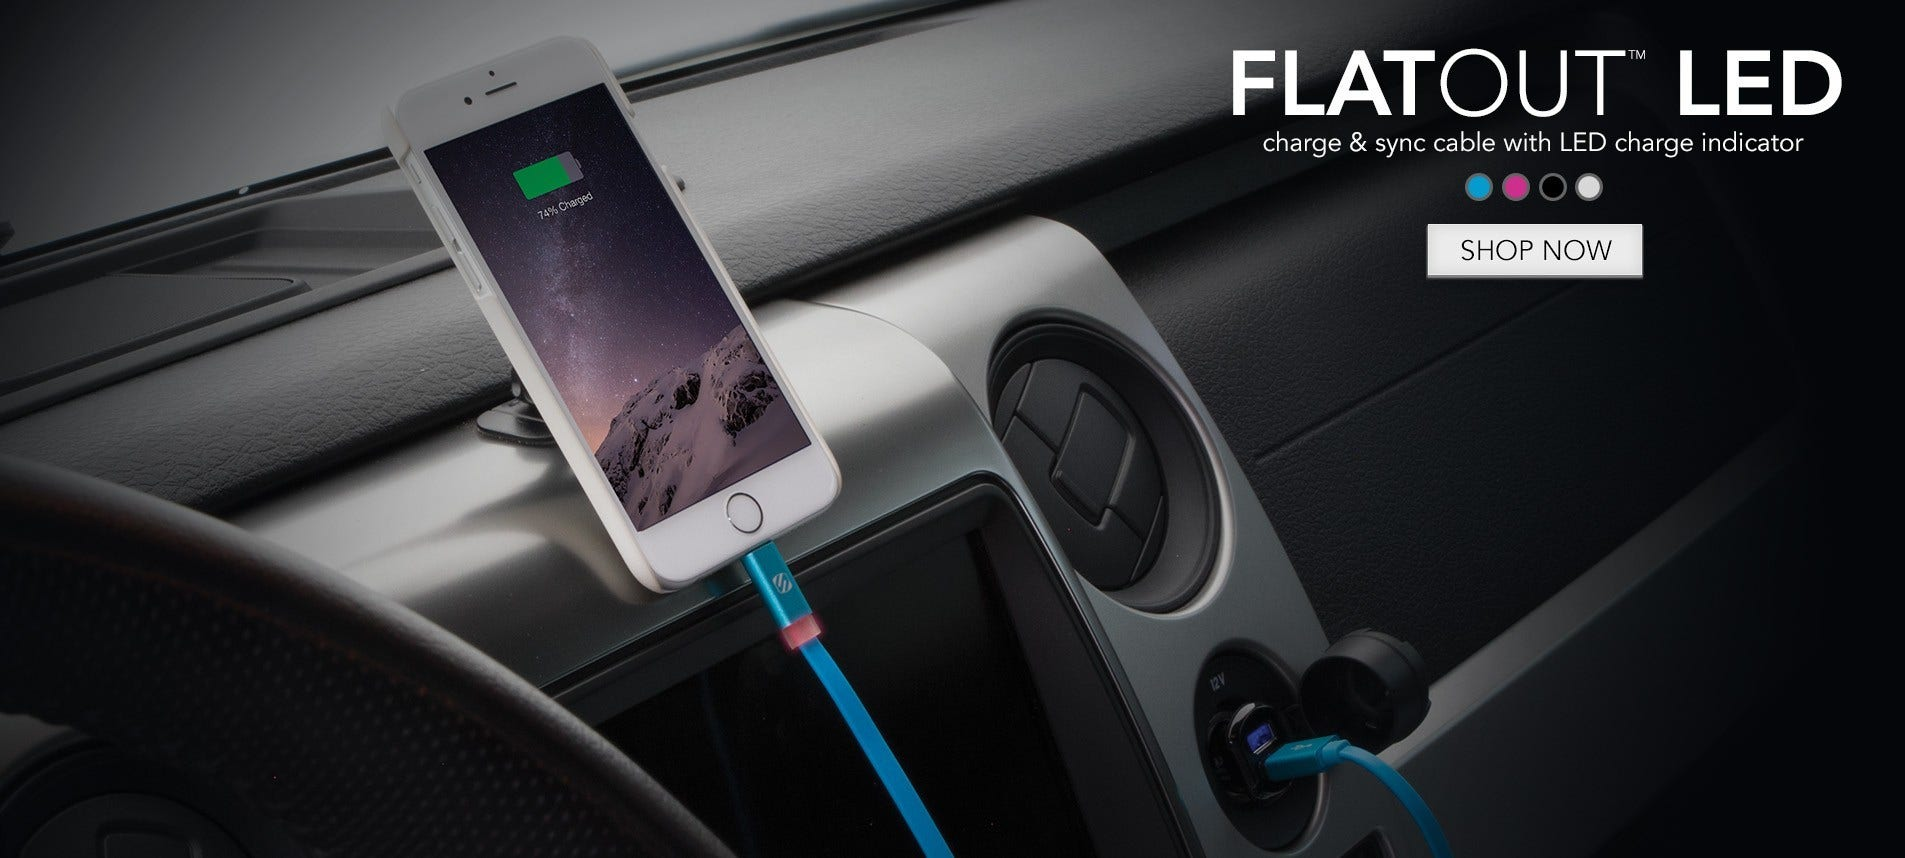 flatOUT LED charge sync cable